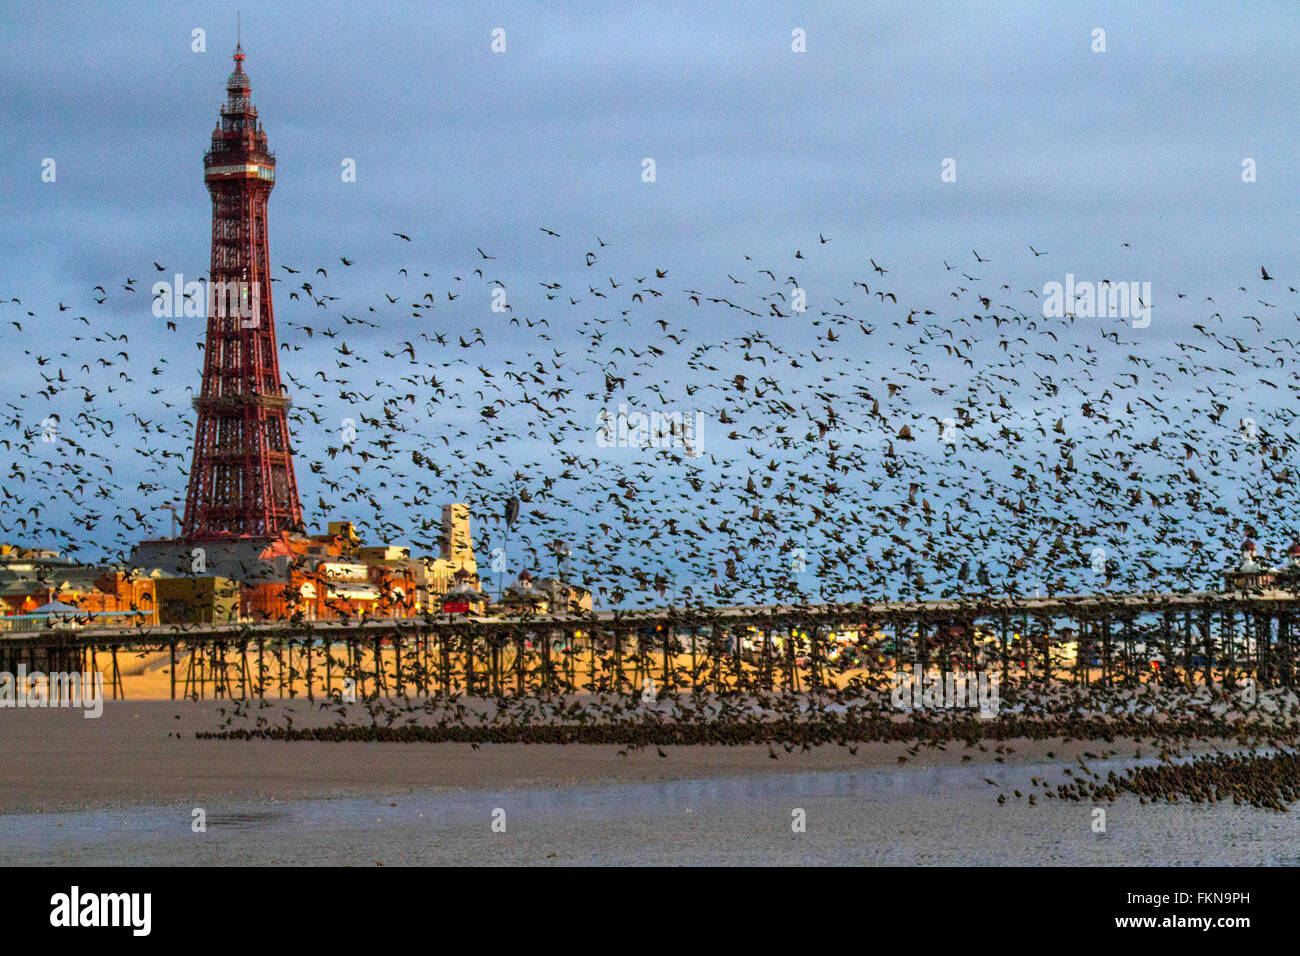 Birds in Flight, flying in the clouds flocks of Starlings at Blackpool, Lancashire, UK. Starling murmuration at - Stock Image